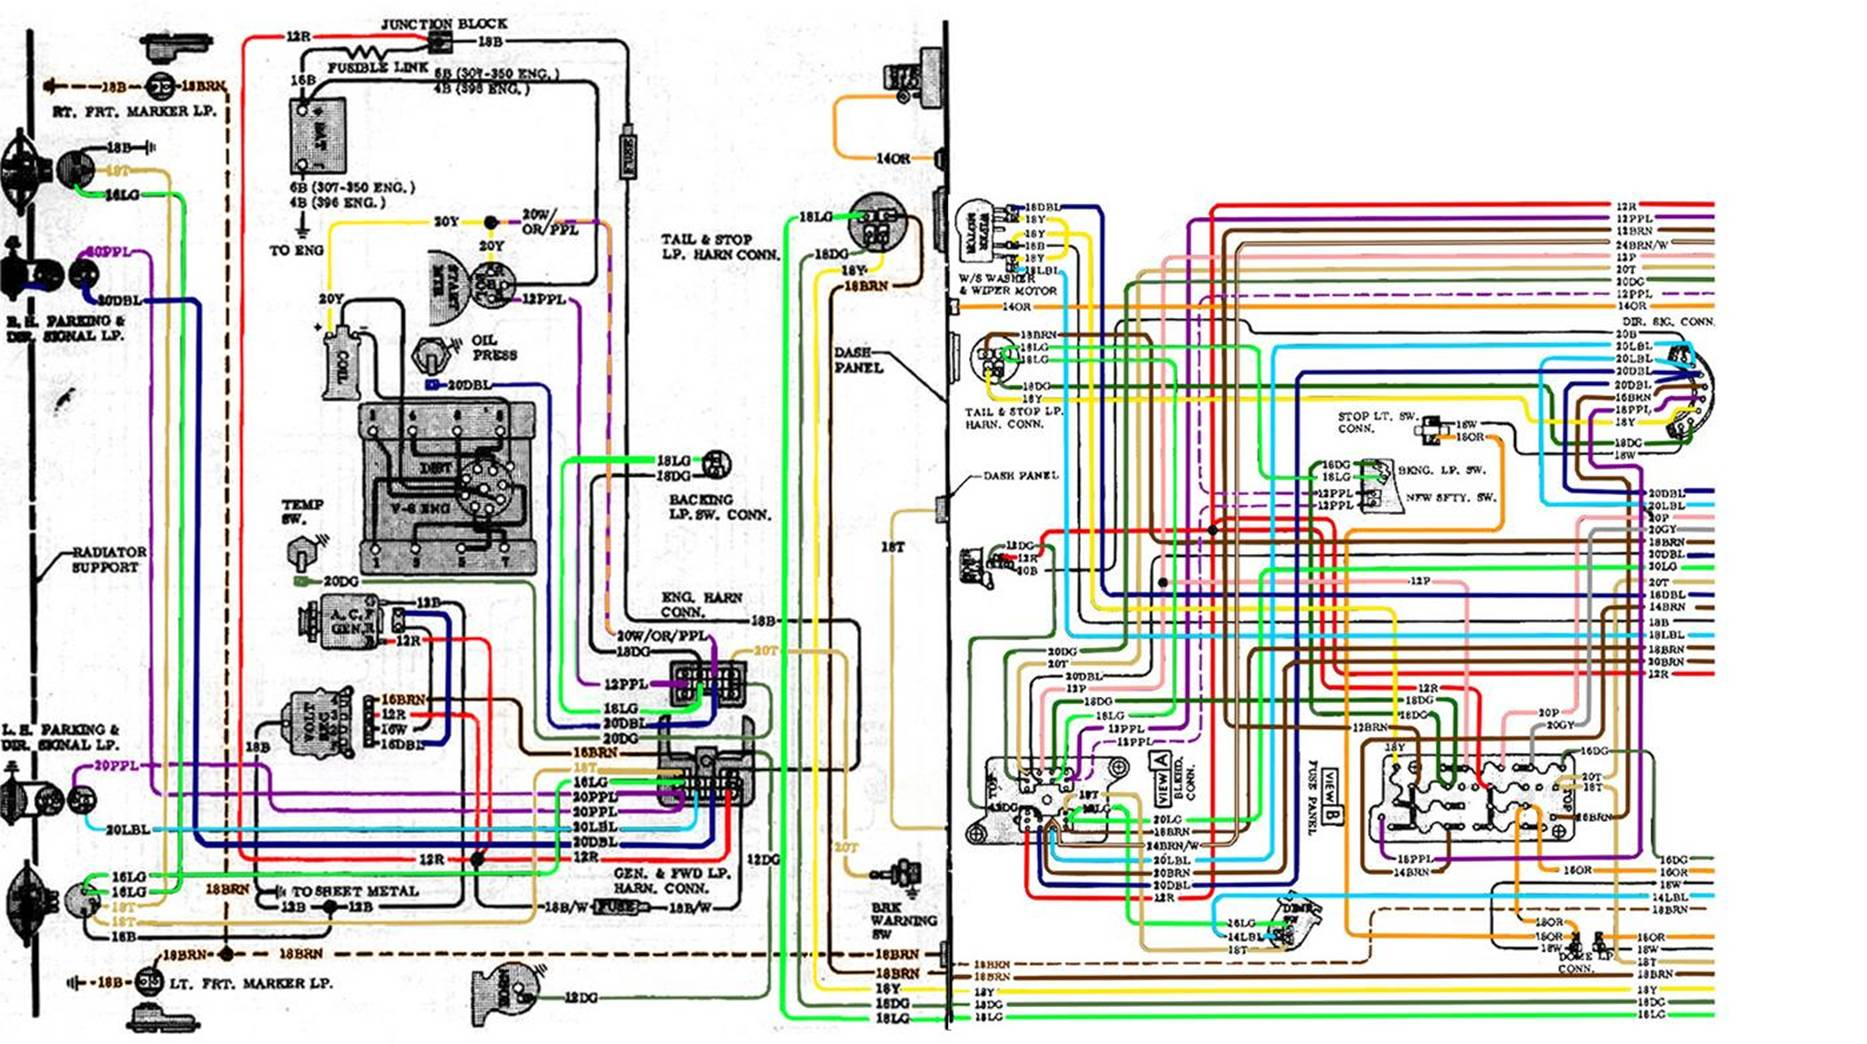 Chevy Blazer Wiring Harness Diagram Opinions About 1998 Radio Diagrams 67 72 Rh Outintheshop Com 2001 Trailblazer